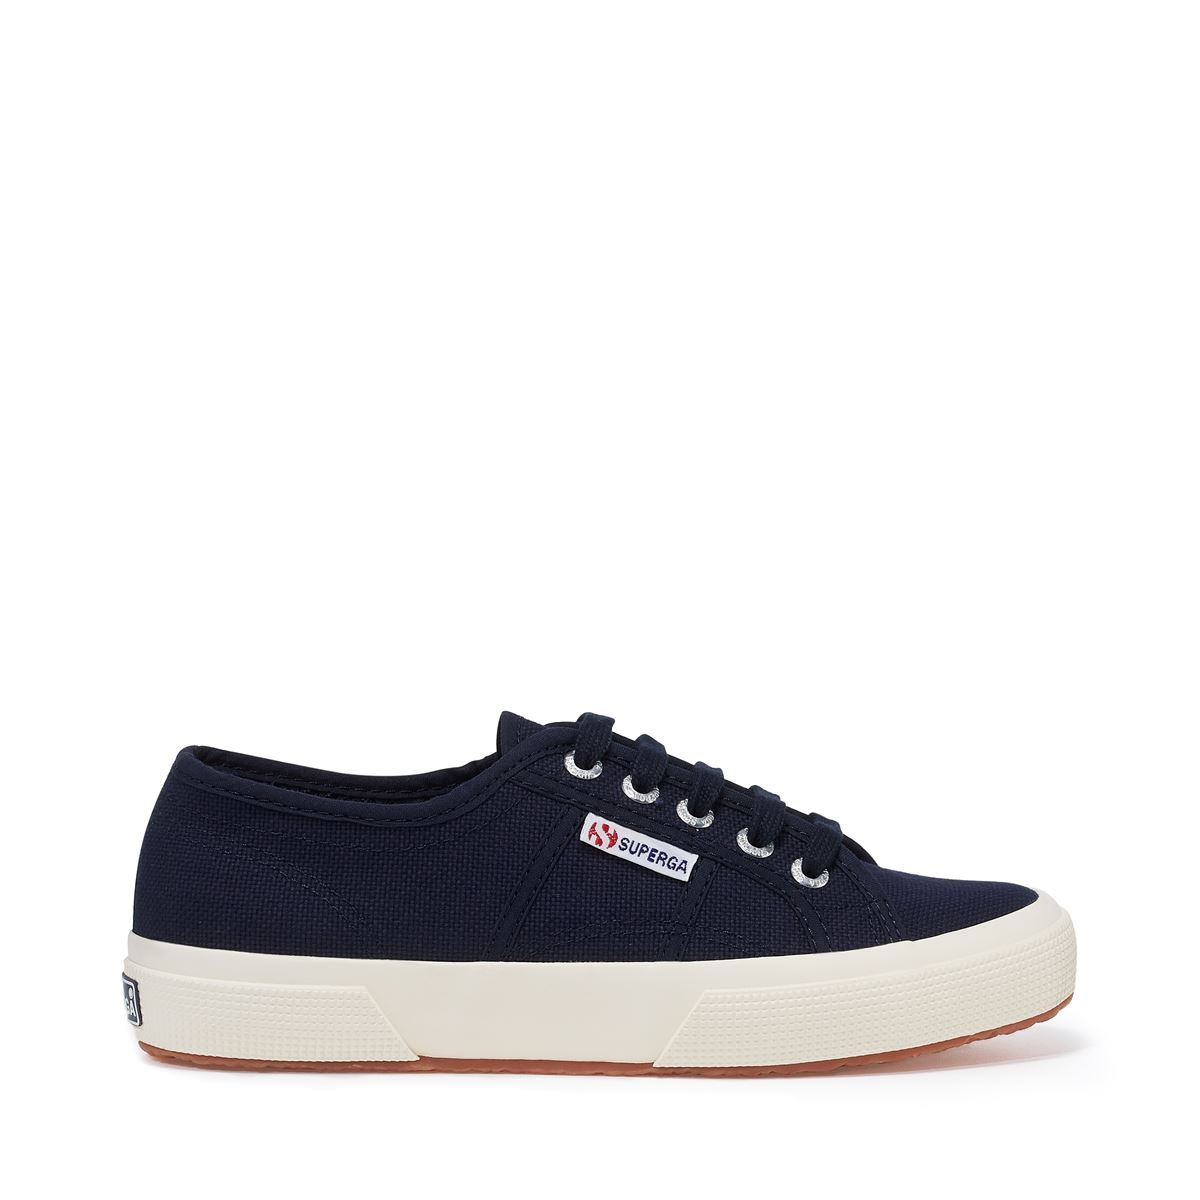 Italian Le Superga Superga for men and women-S000010